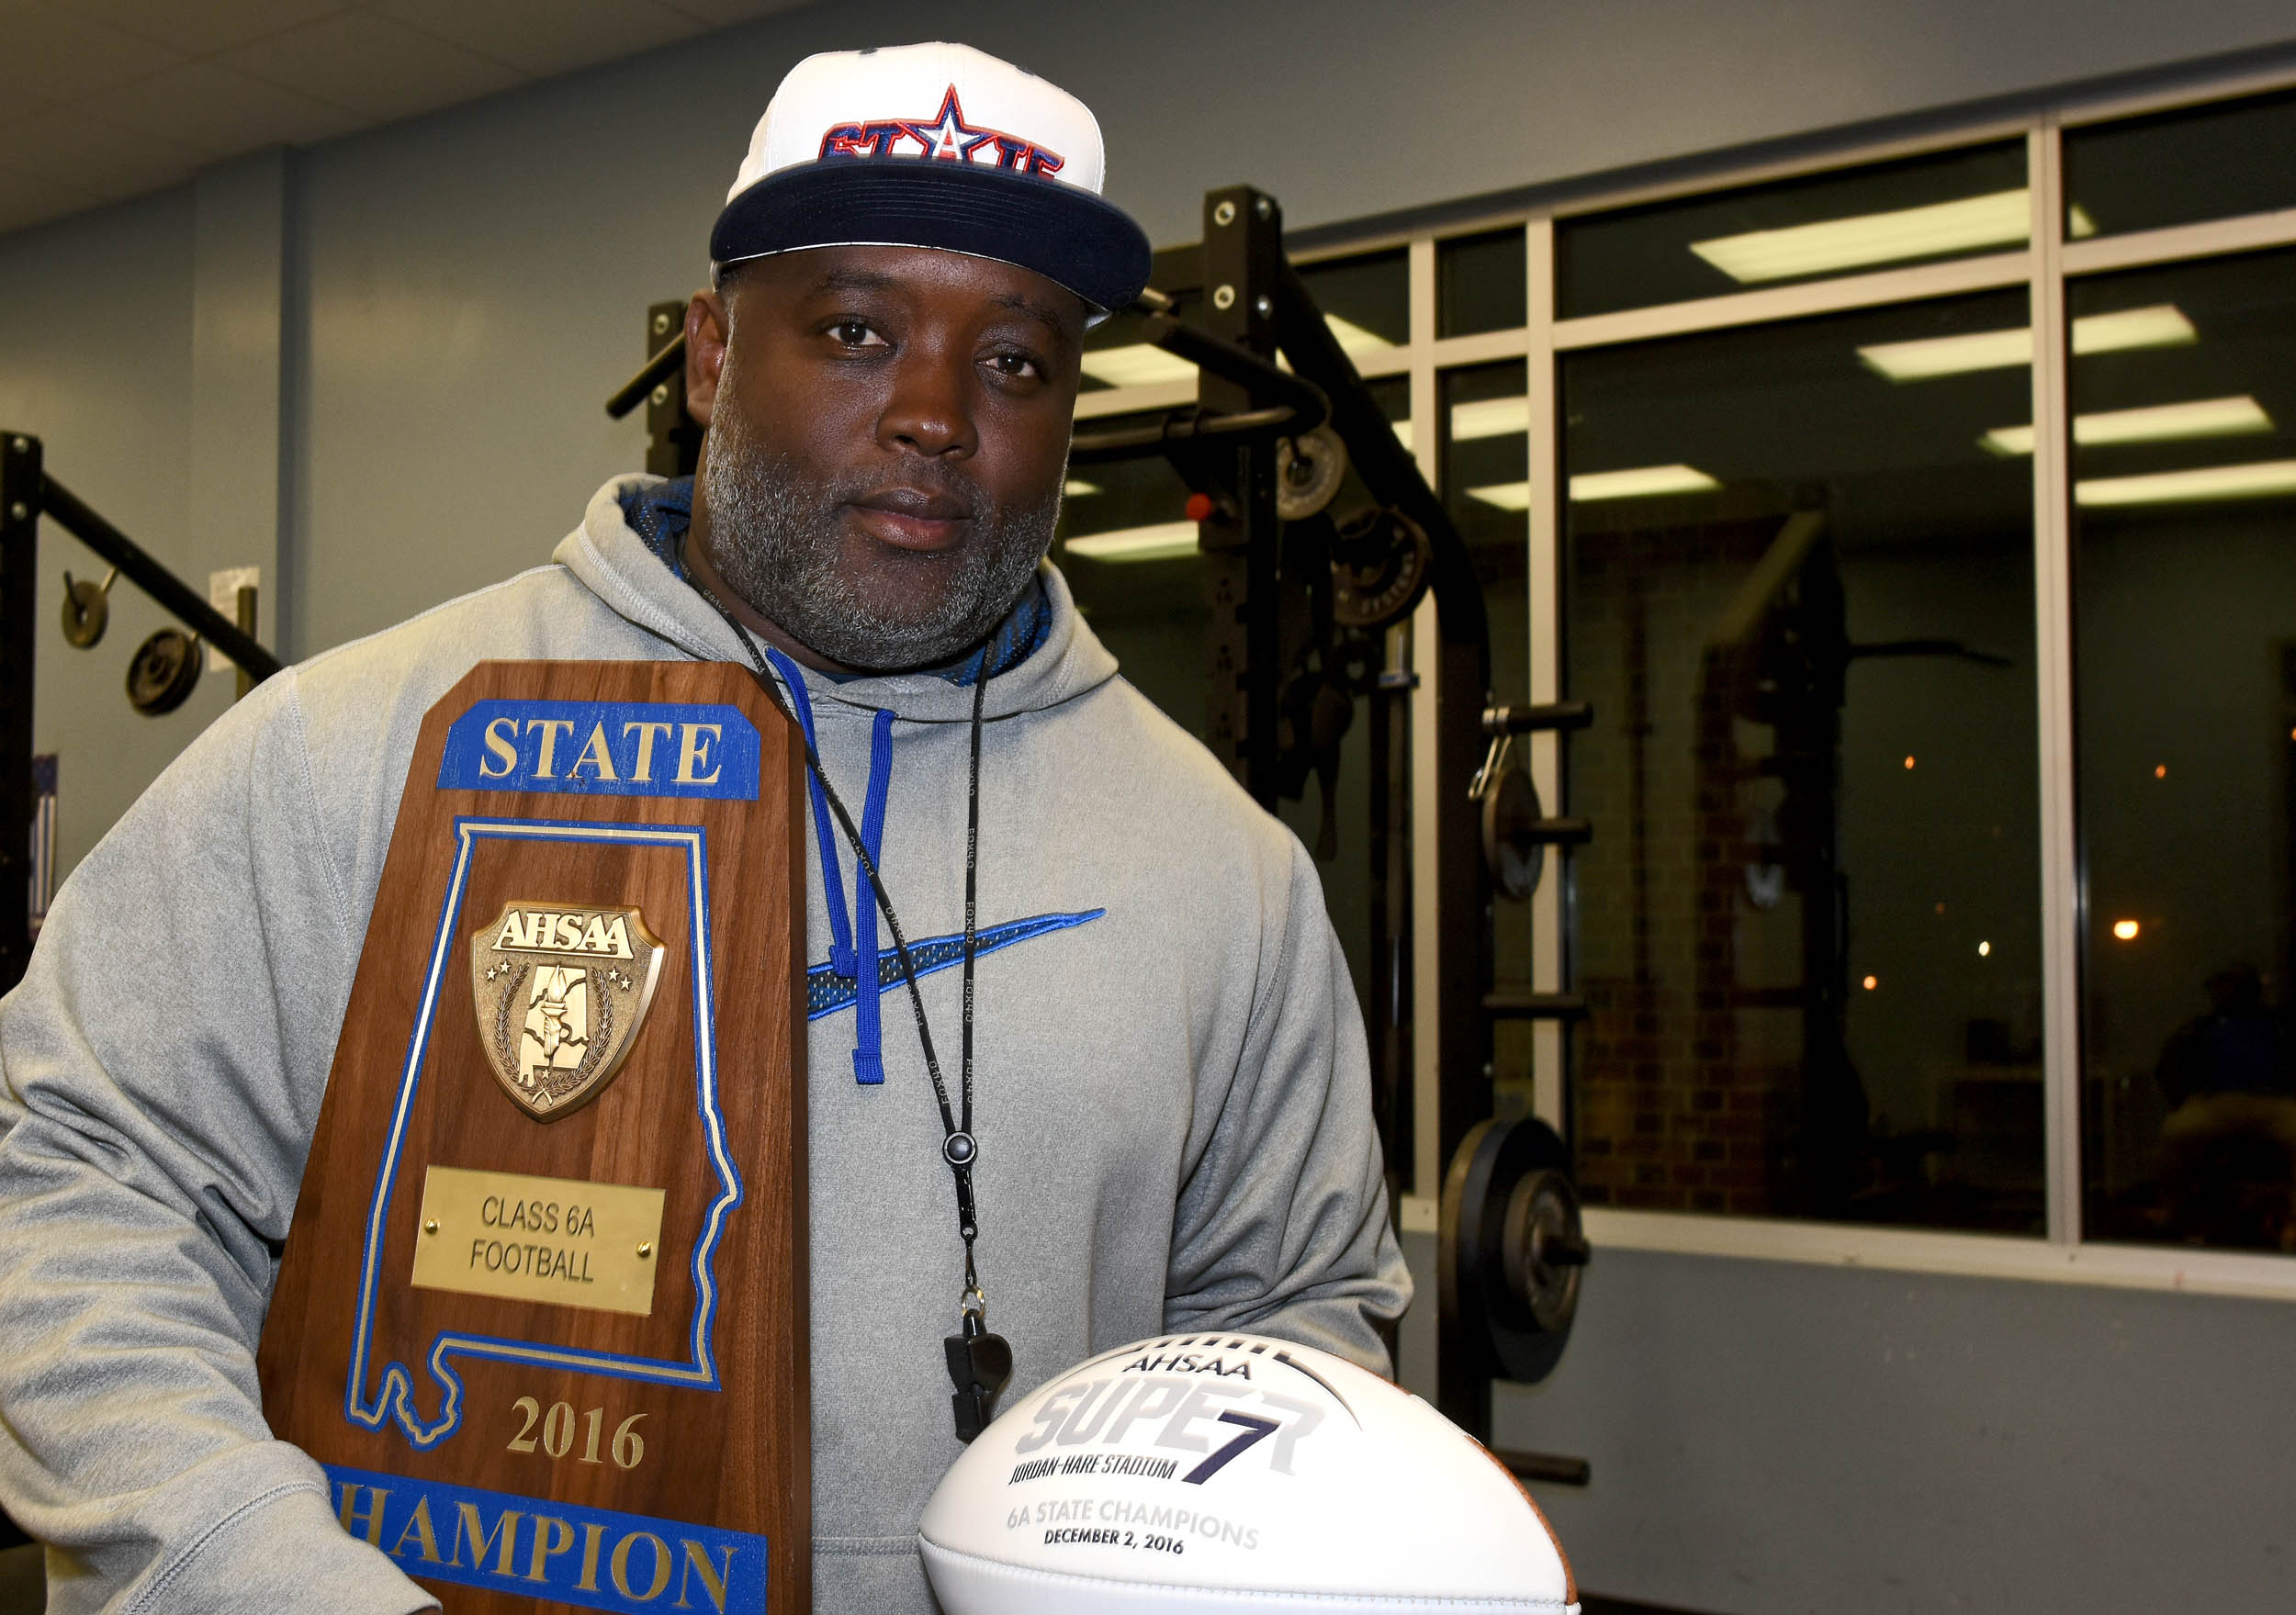 Coach Rueben Nelson Jr. cradles the championship trophy and football he received after his Ramsay Rams defeated Opelika 21-16 in Jordan-Hare Stadium  to win the Class 6A Alabama High School Athletic Association state football championship on Friday, Dec. 2, 2016.